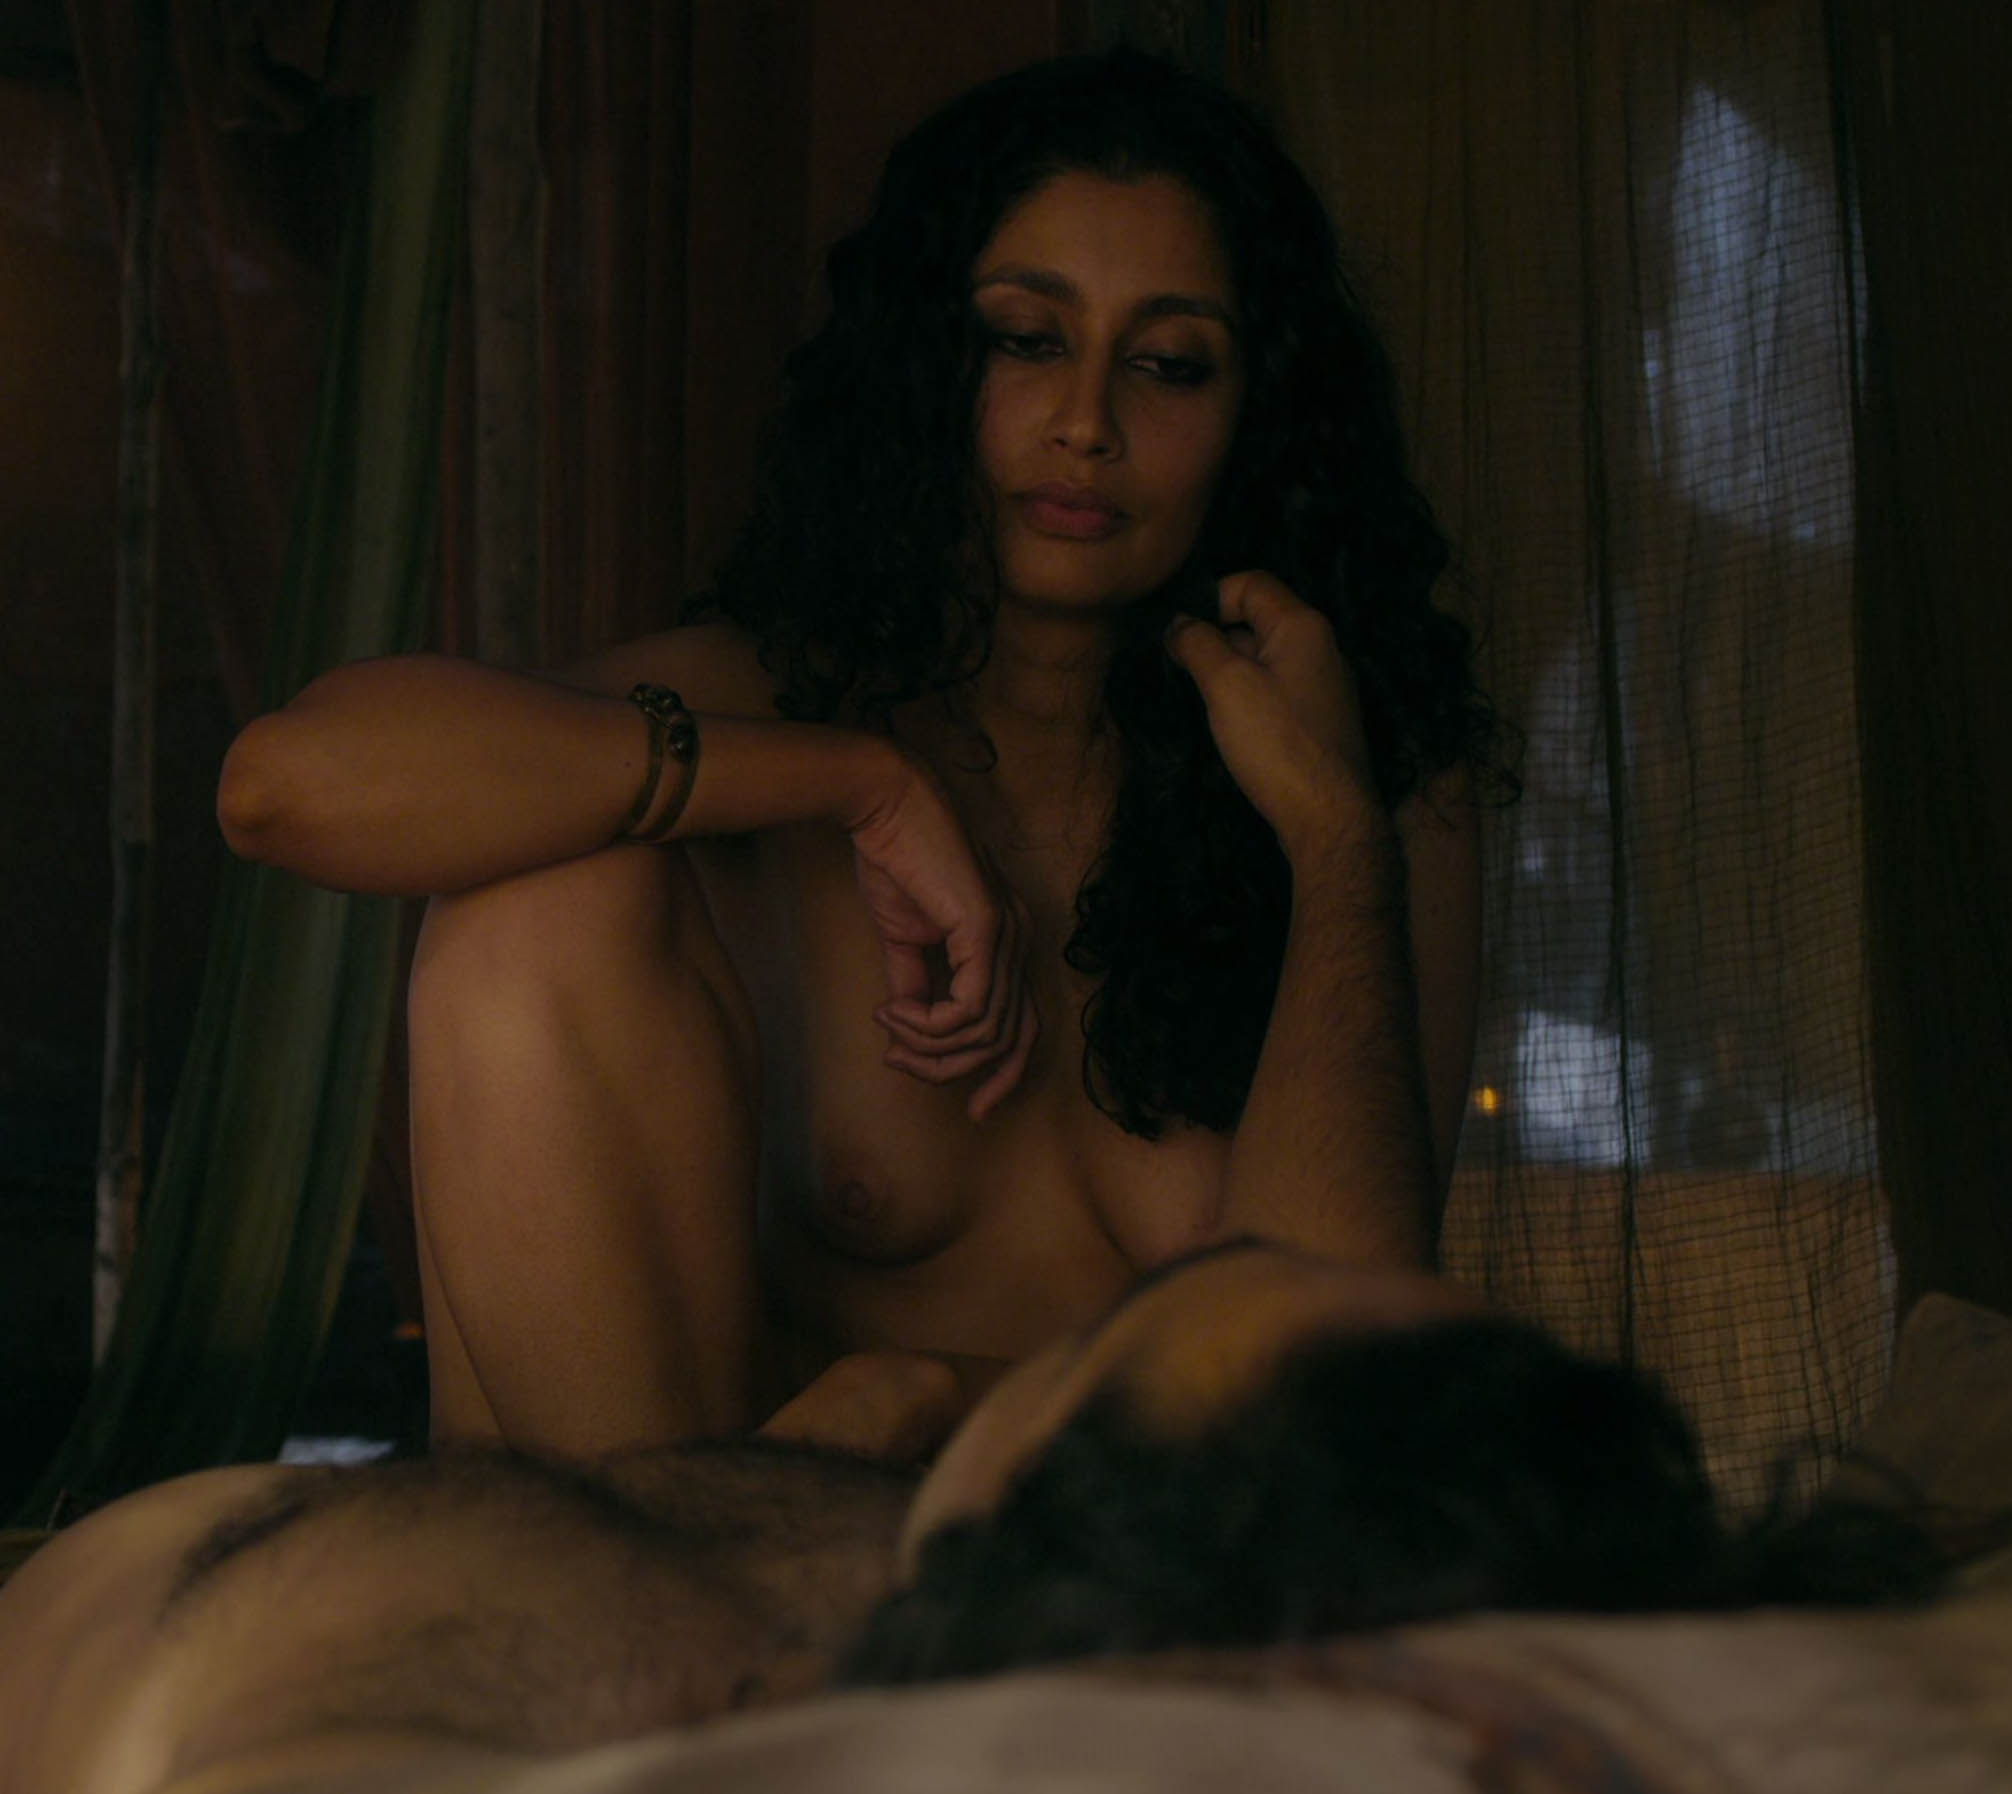 Exotic hot babe Karishma Ahluwalia has her nice boobs breasts topless in TV hit Marco Polo